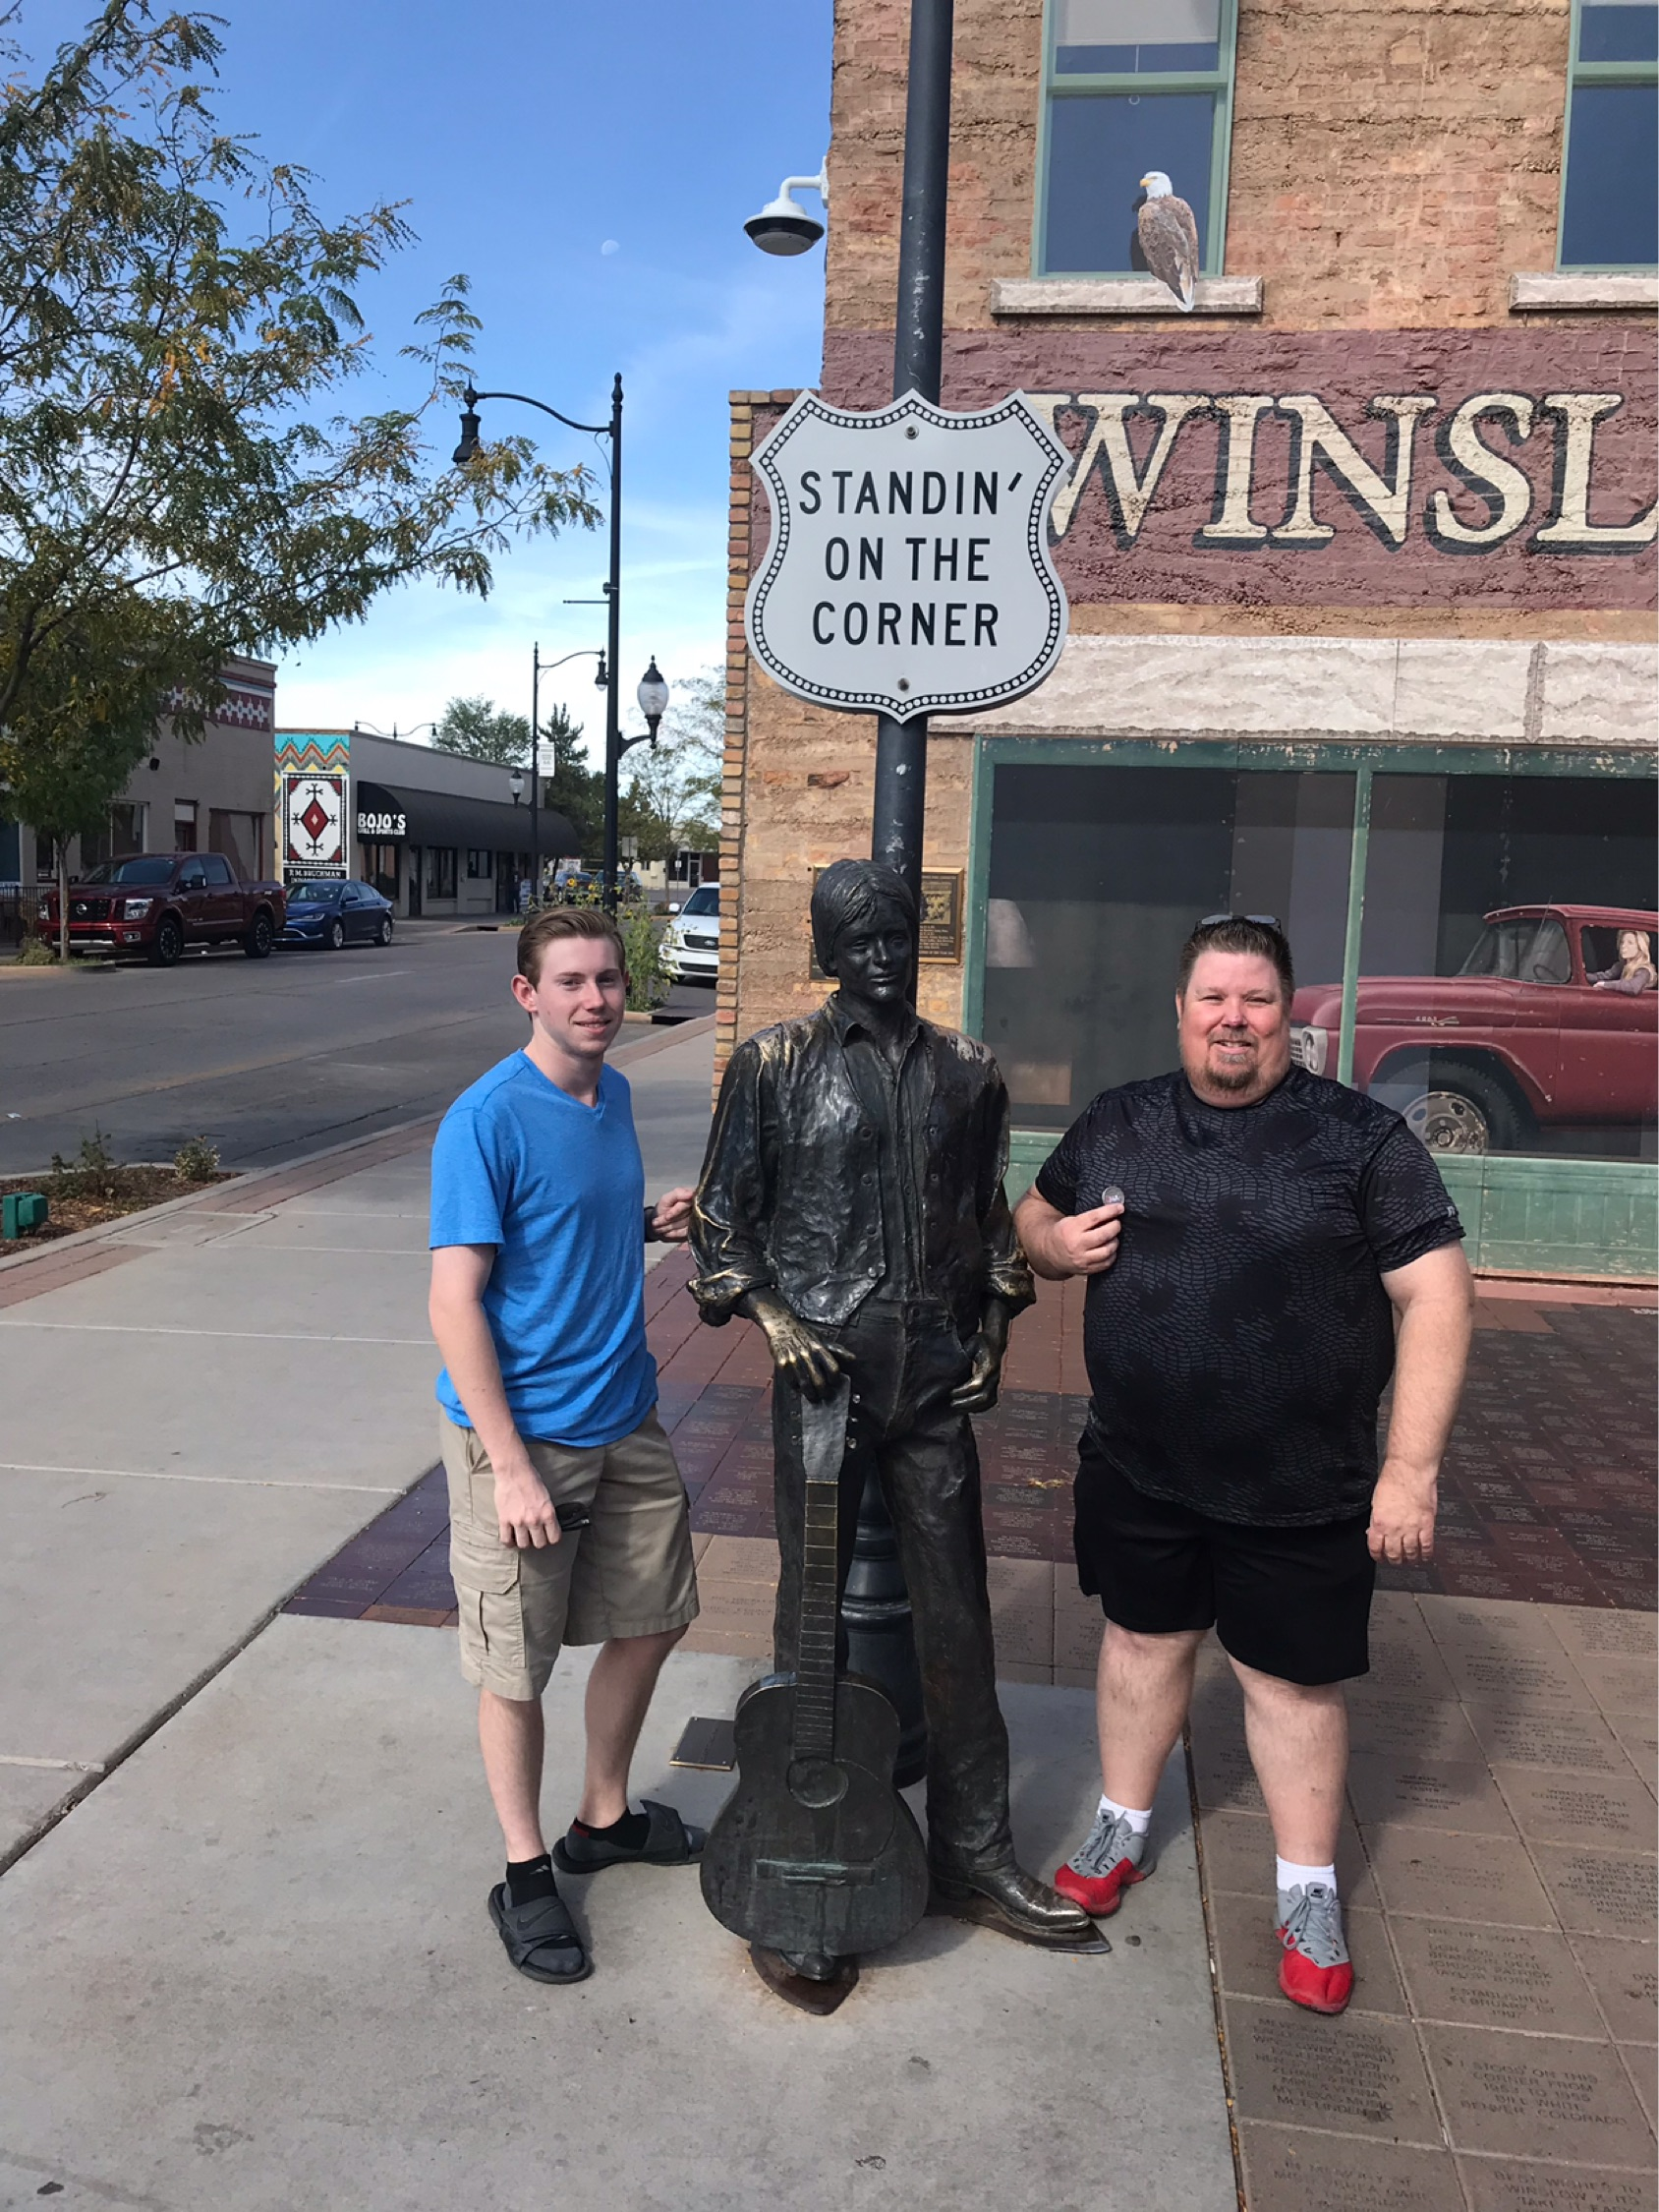 Photo of SRains918 – Quitting on a Corner in Winslow, Arizona